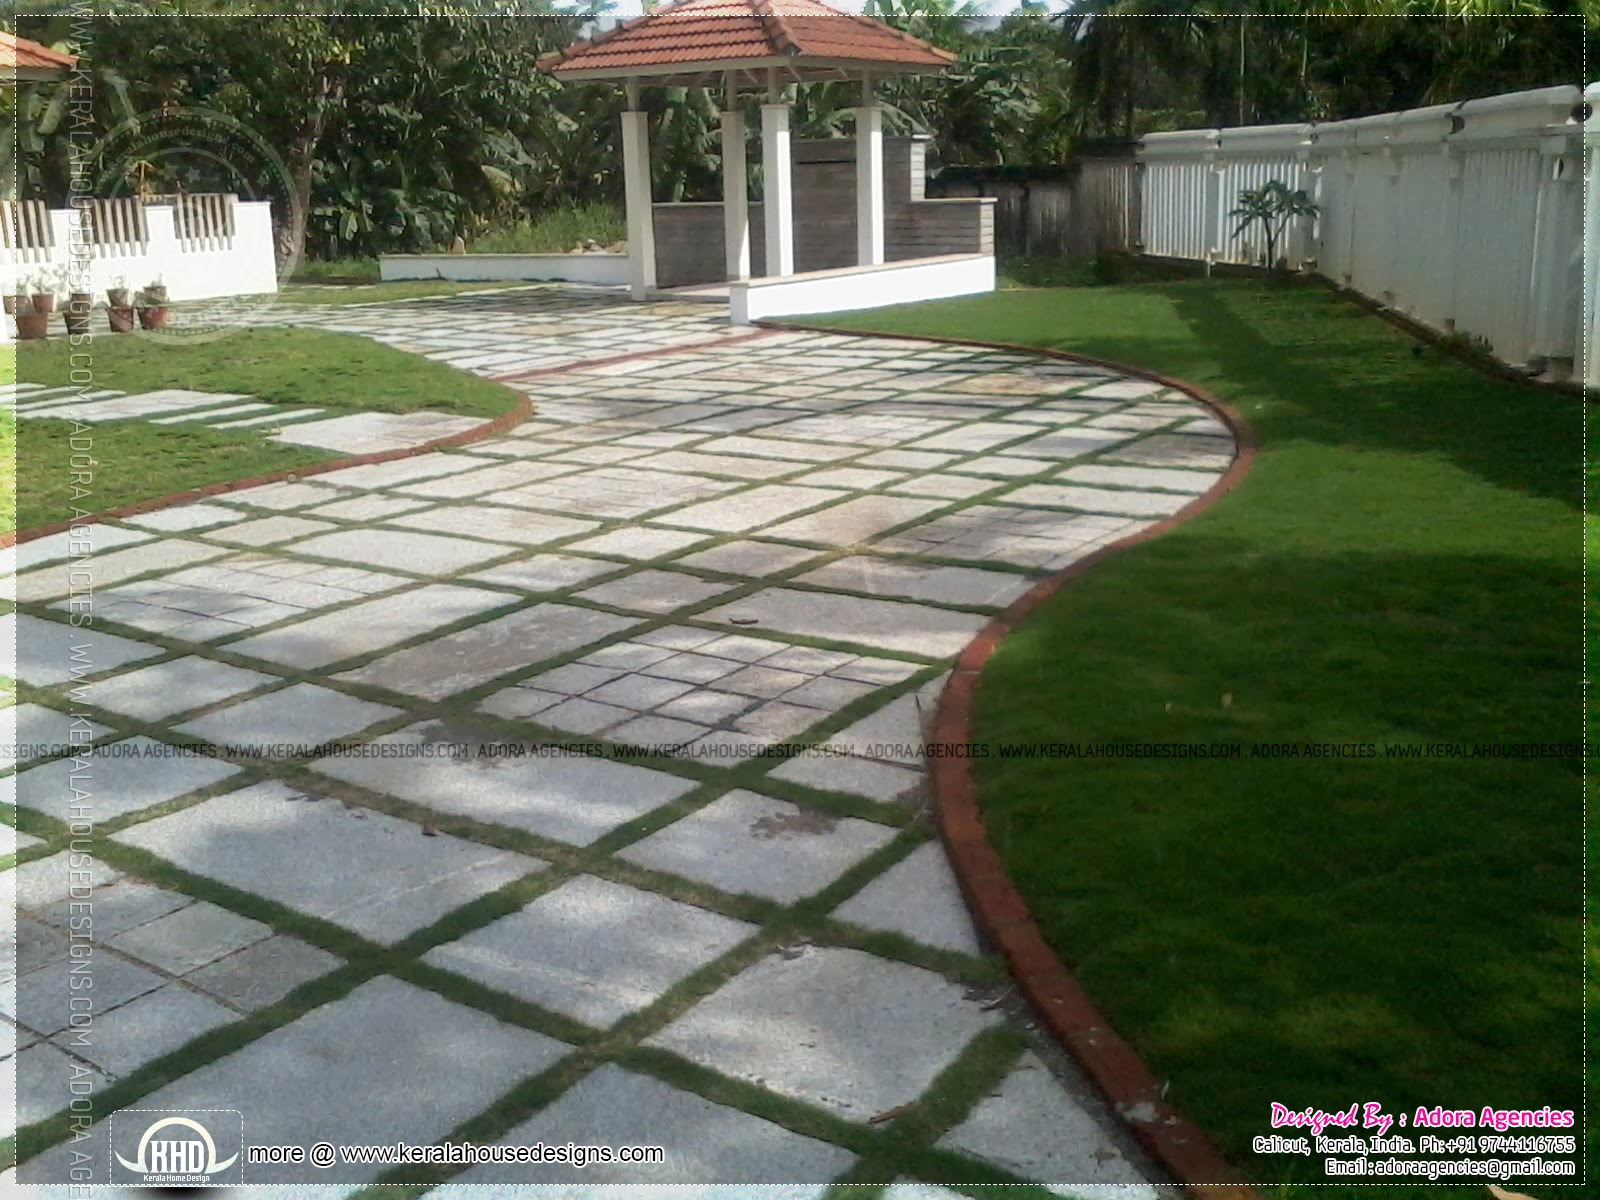 Exterior stone cladding kerala home design and floor plans for Kerala style garden designs